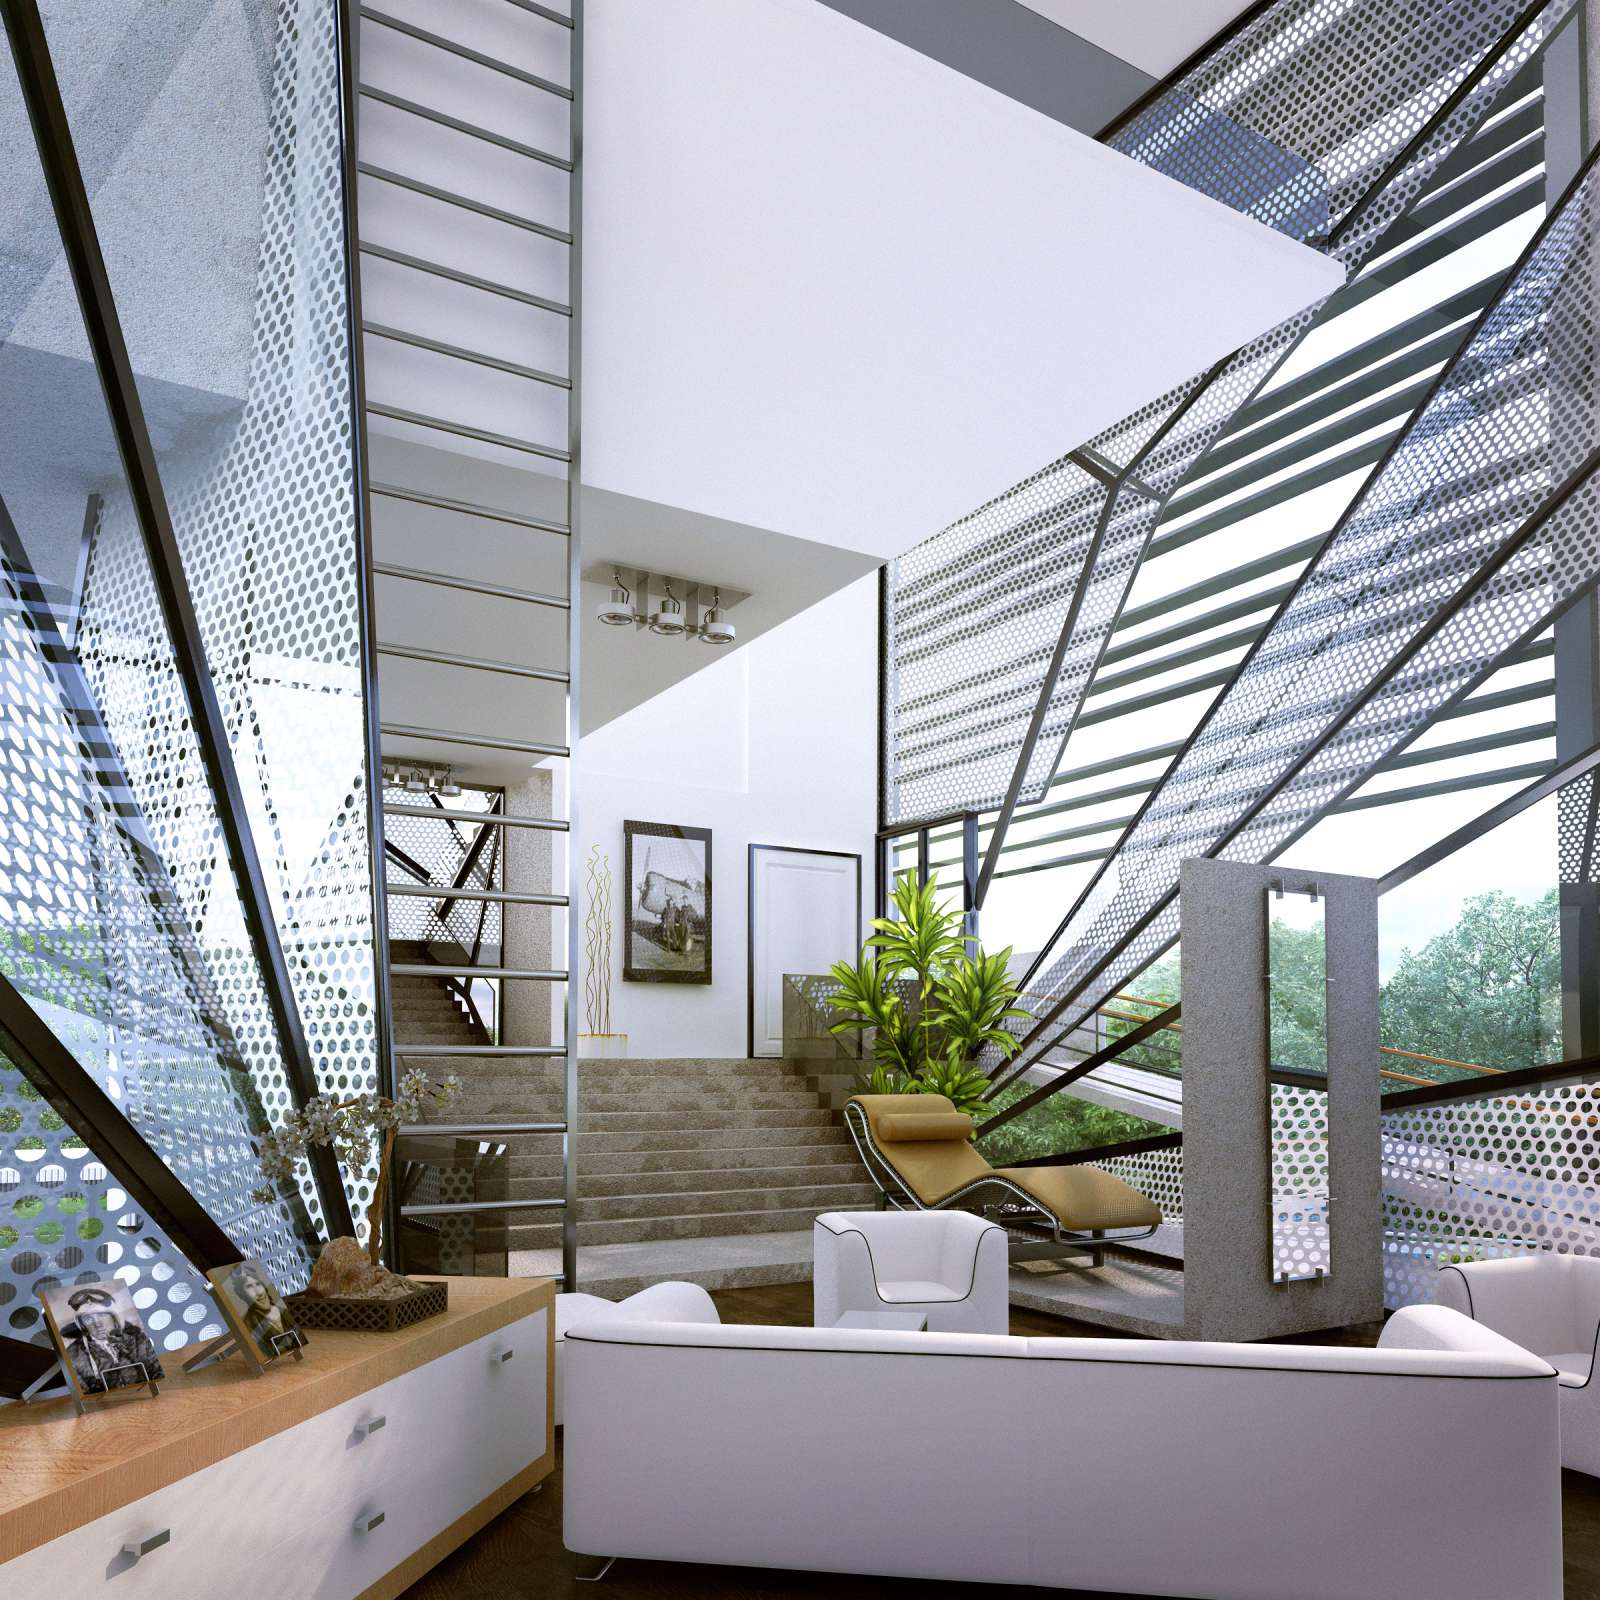 07-Aviator-s-Villa-by-Urban-Office-Architecture